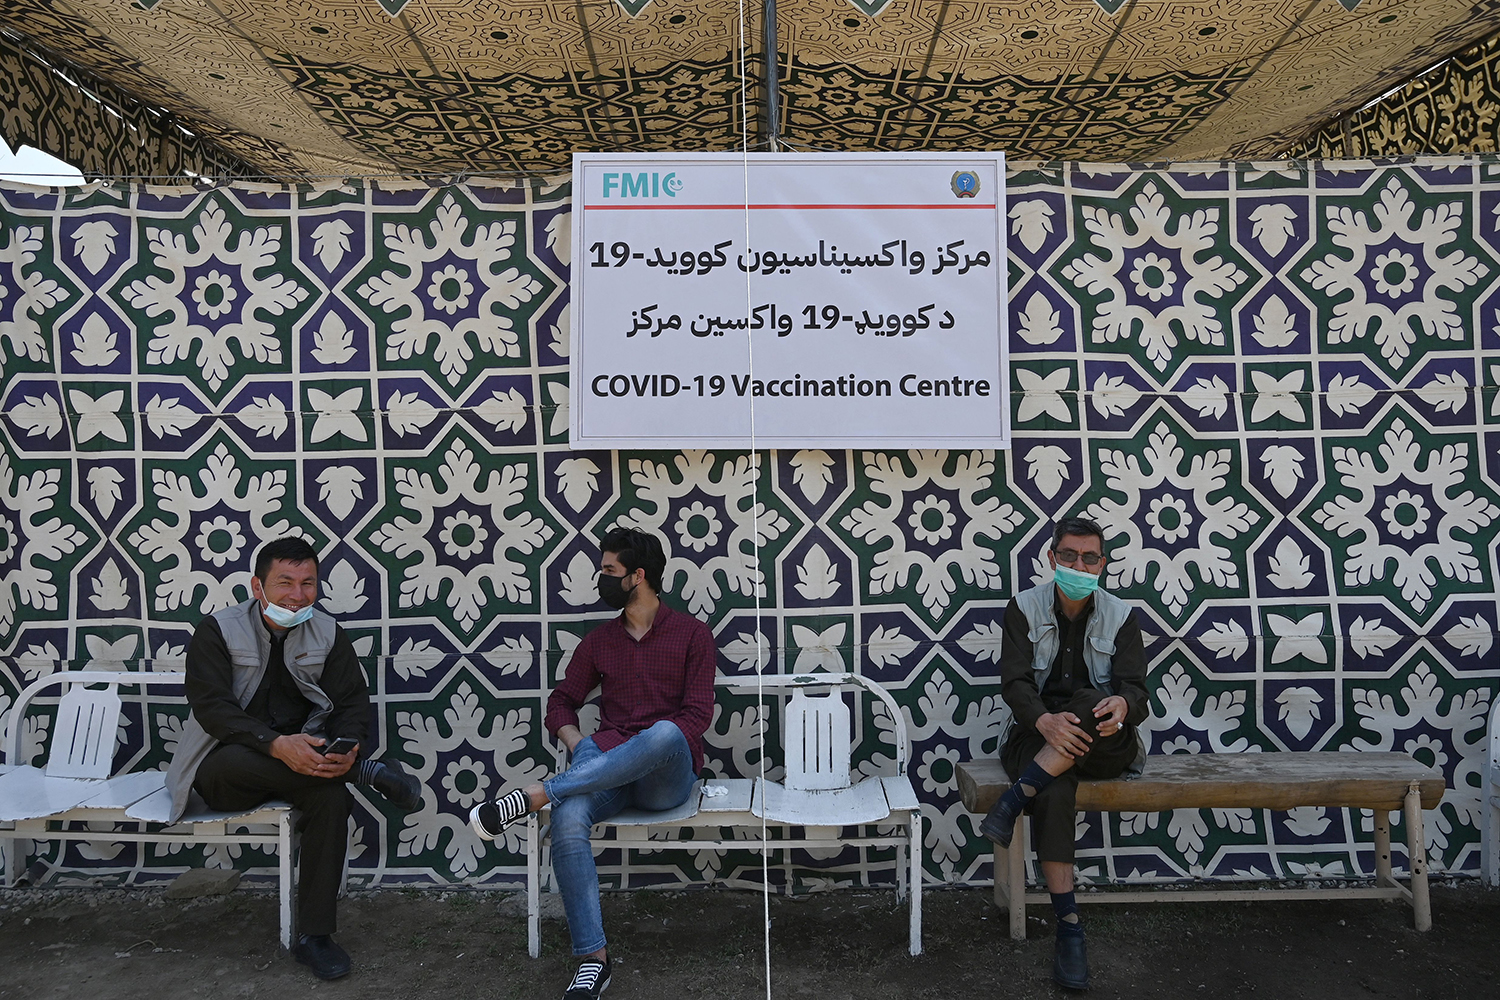 Men wait to receive the dose of Covishield vaccine against the Covid-19 coronavirus at a vaccination center in Kabul on April 26.